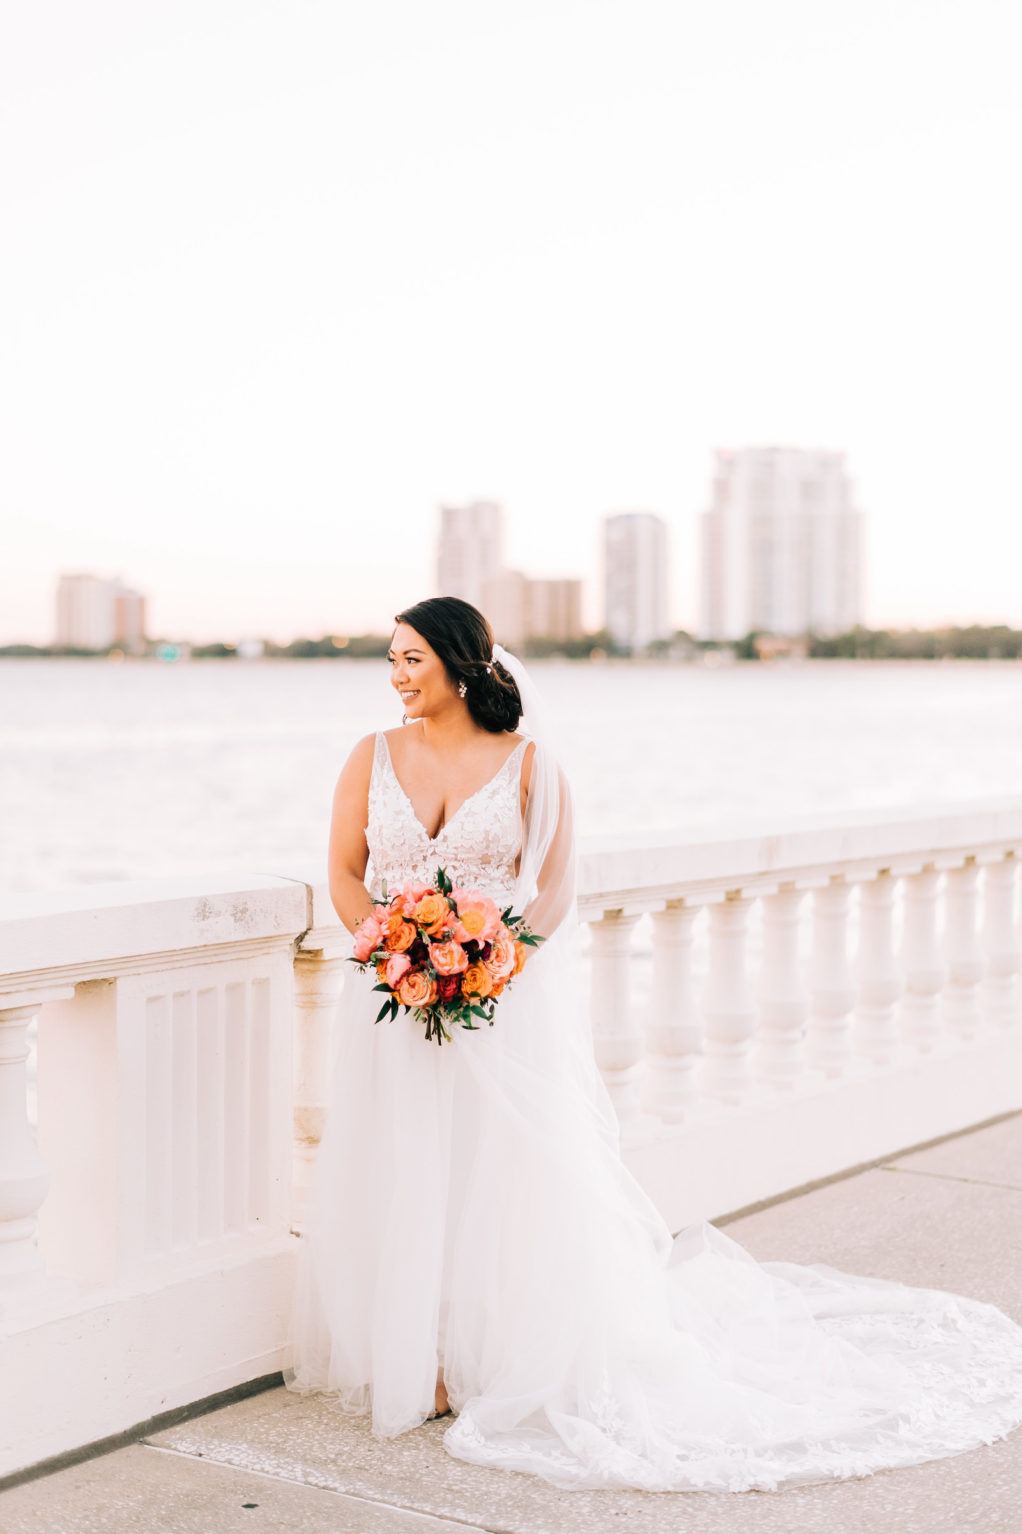 Tampa Bay Bride in Classic Lace Plunging V Neckline Tule A-Line Wedding Dress Holding Vibrant Colorful Orange and Pink Floral Bouquet